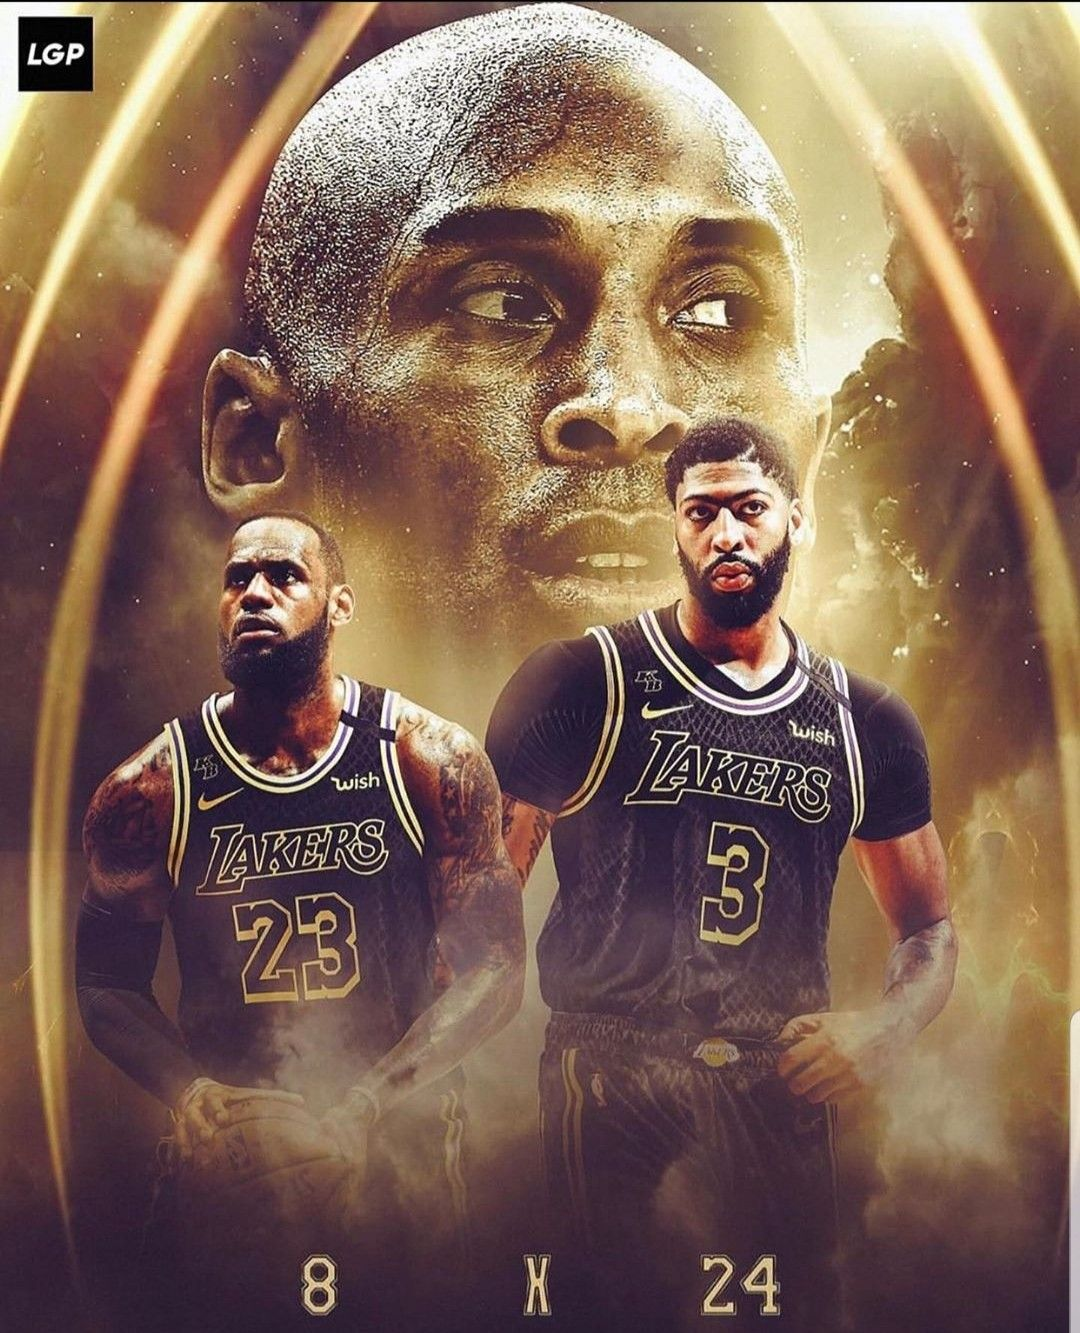 Pin By Steven Neal On Mamba Out The Black Mamba Kobe Bryant 1978 2020 In 2020 Lebron James Lakers Kobe Bryant Lebron James Kobe Bryant Pictures